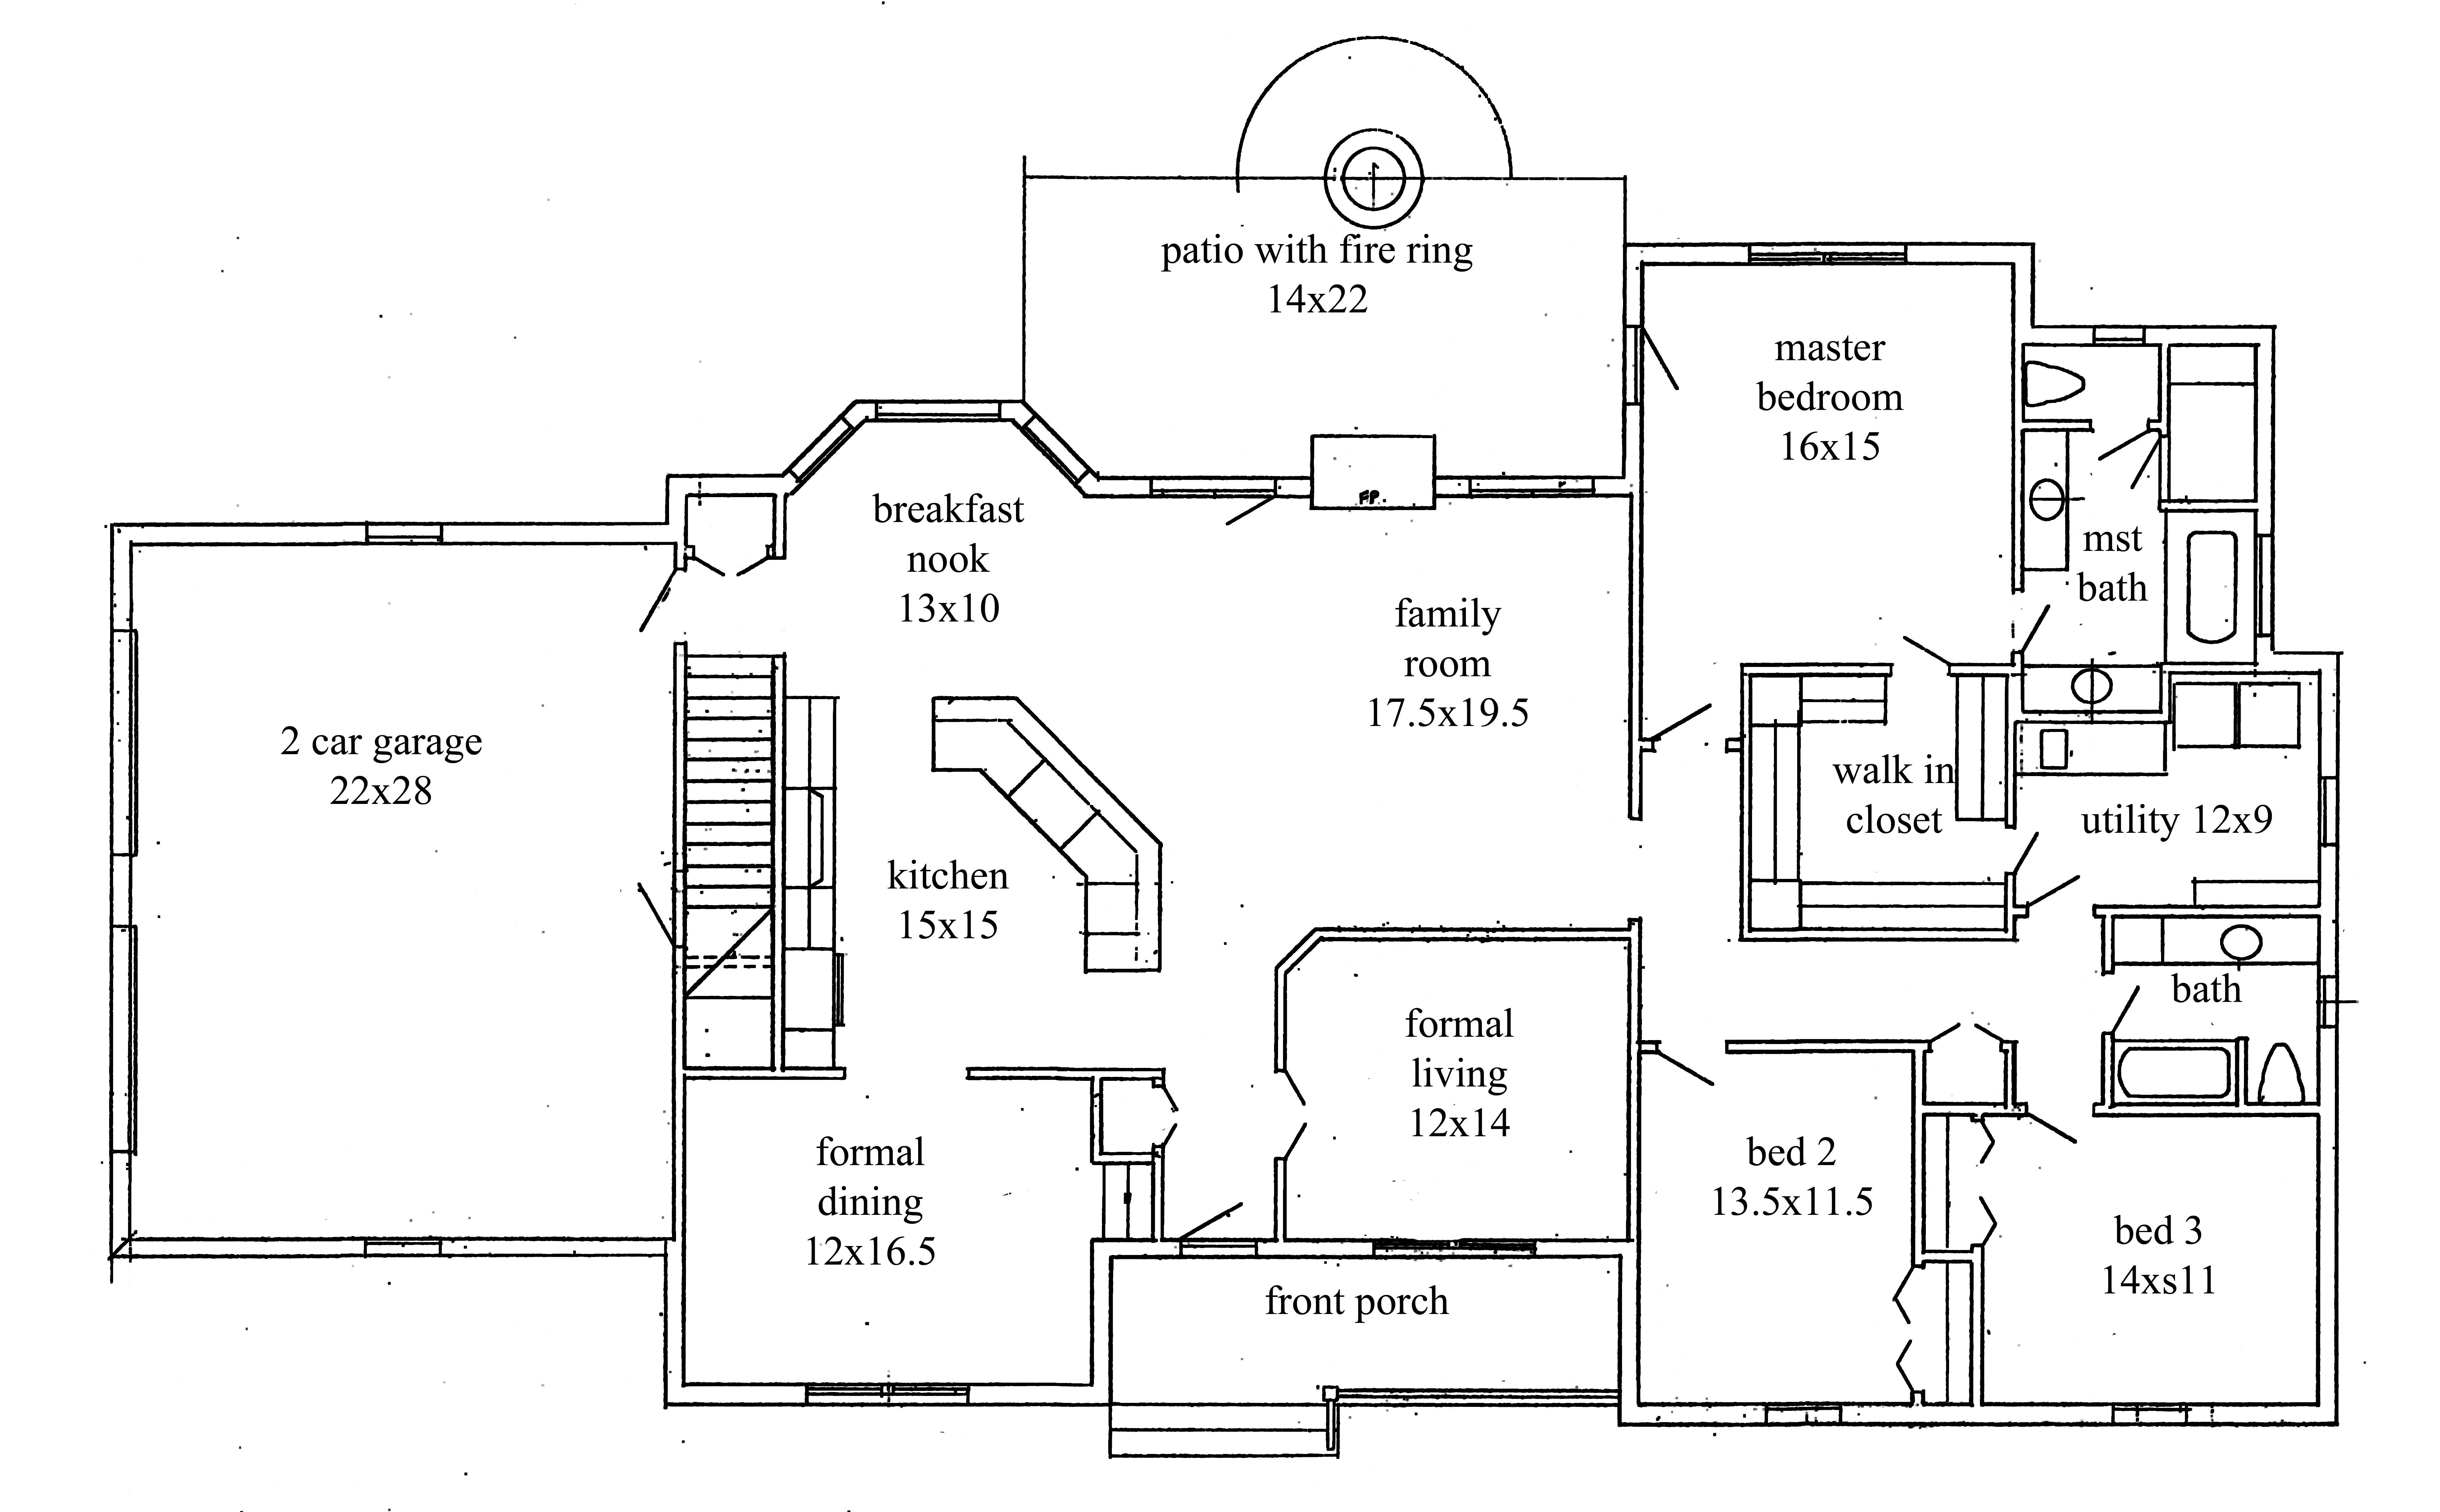 House Plans New Construction Home Floor Plan House Plans 146603